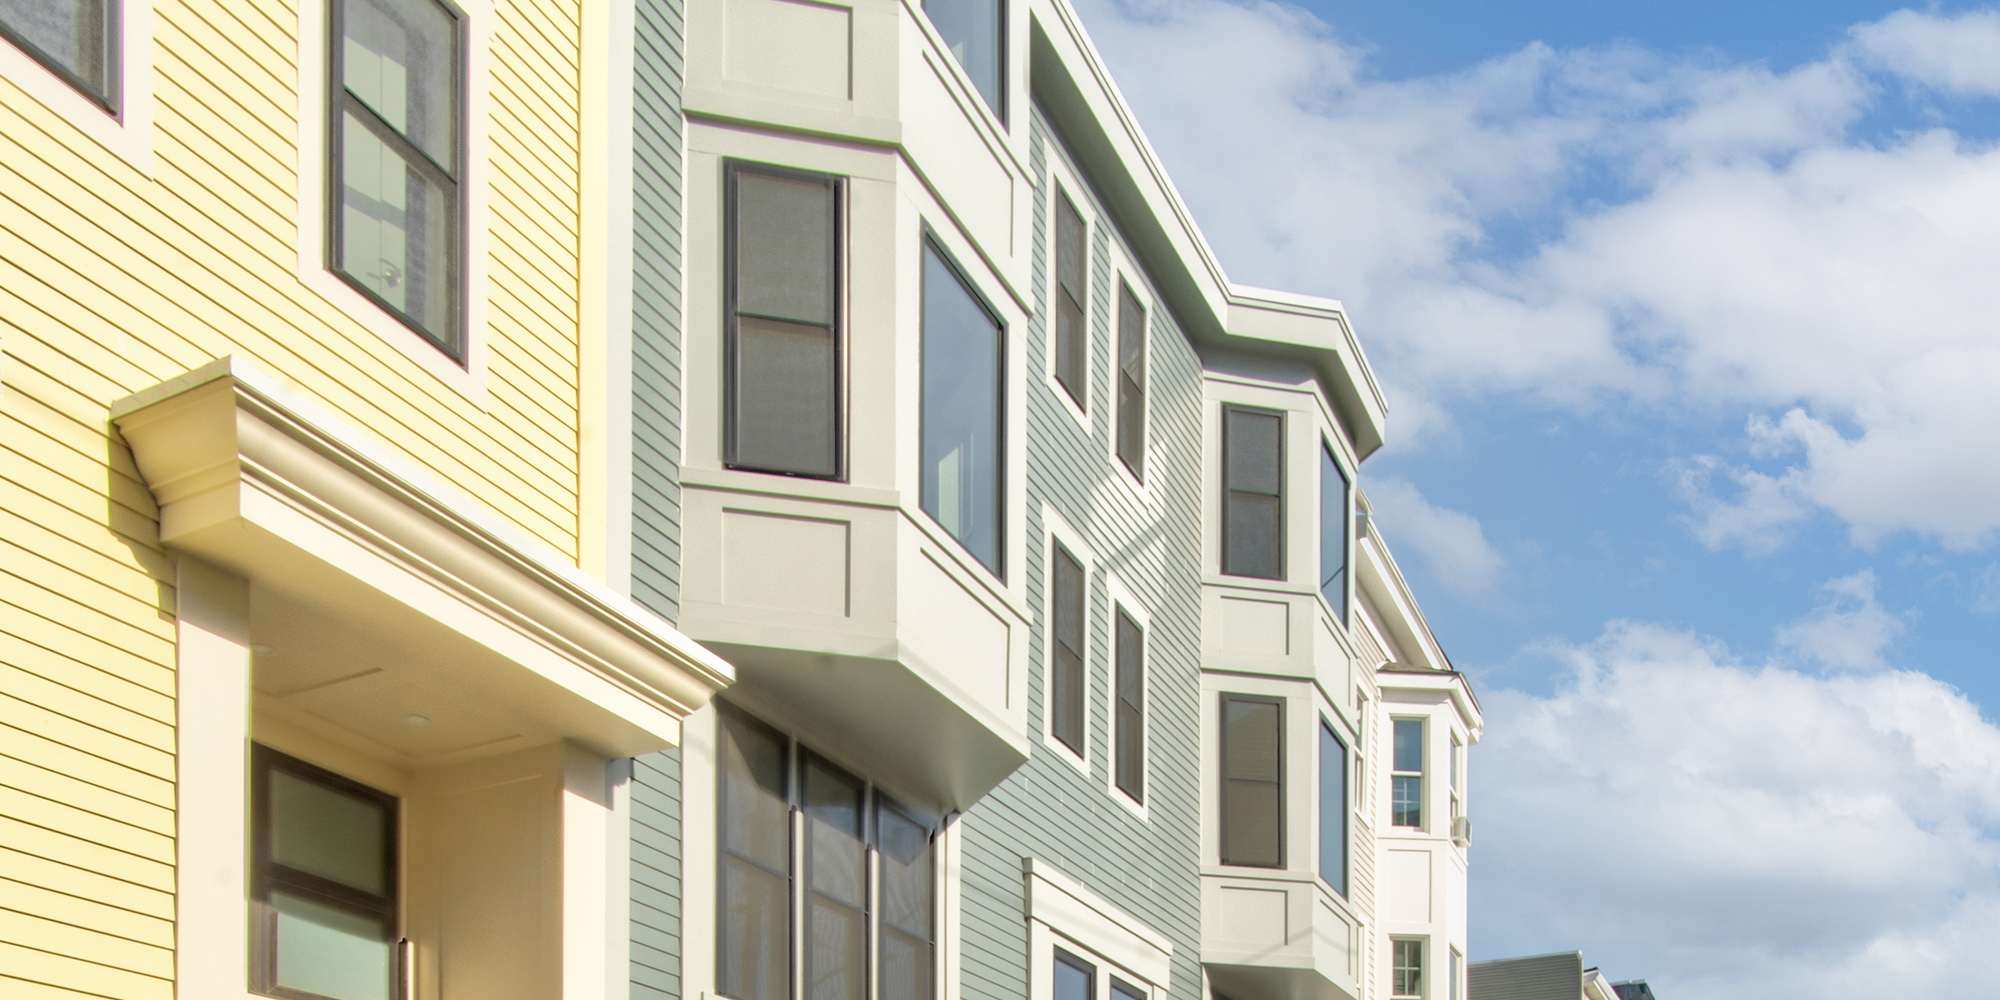 Newly Constructed Condos Around Boston - Here's What's on the Market